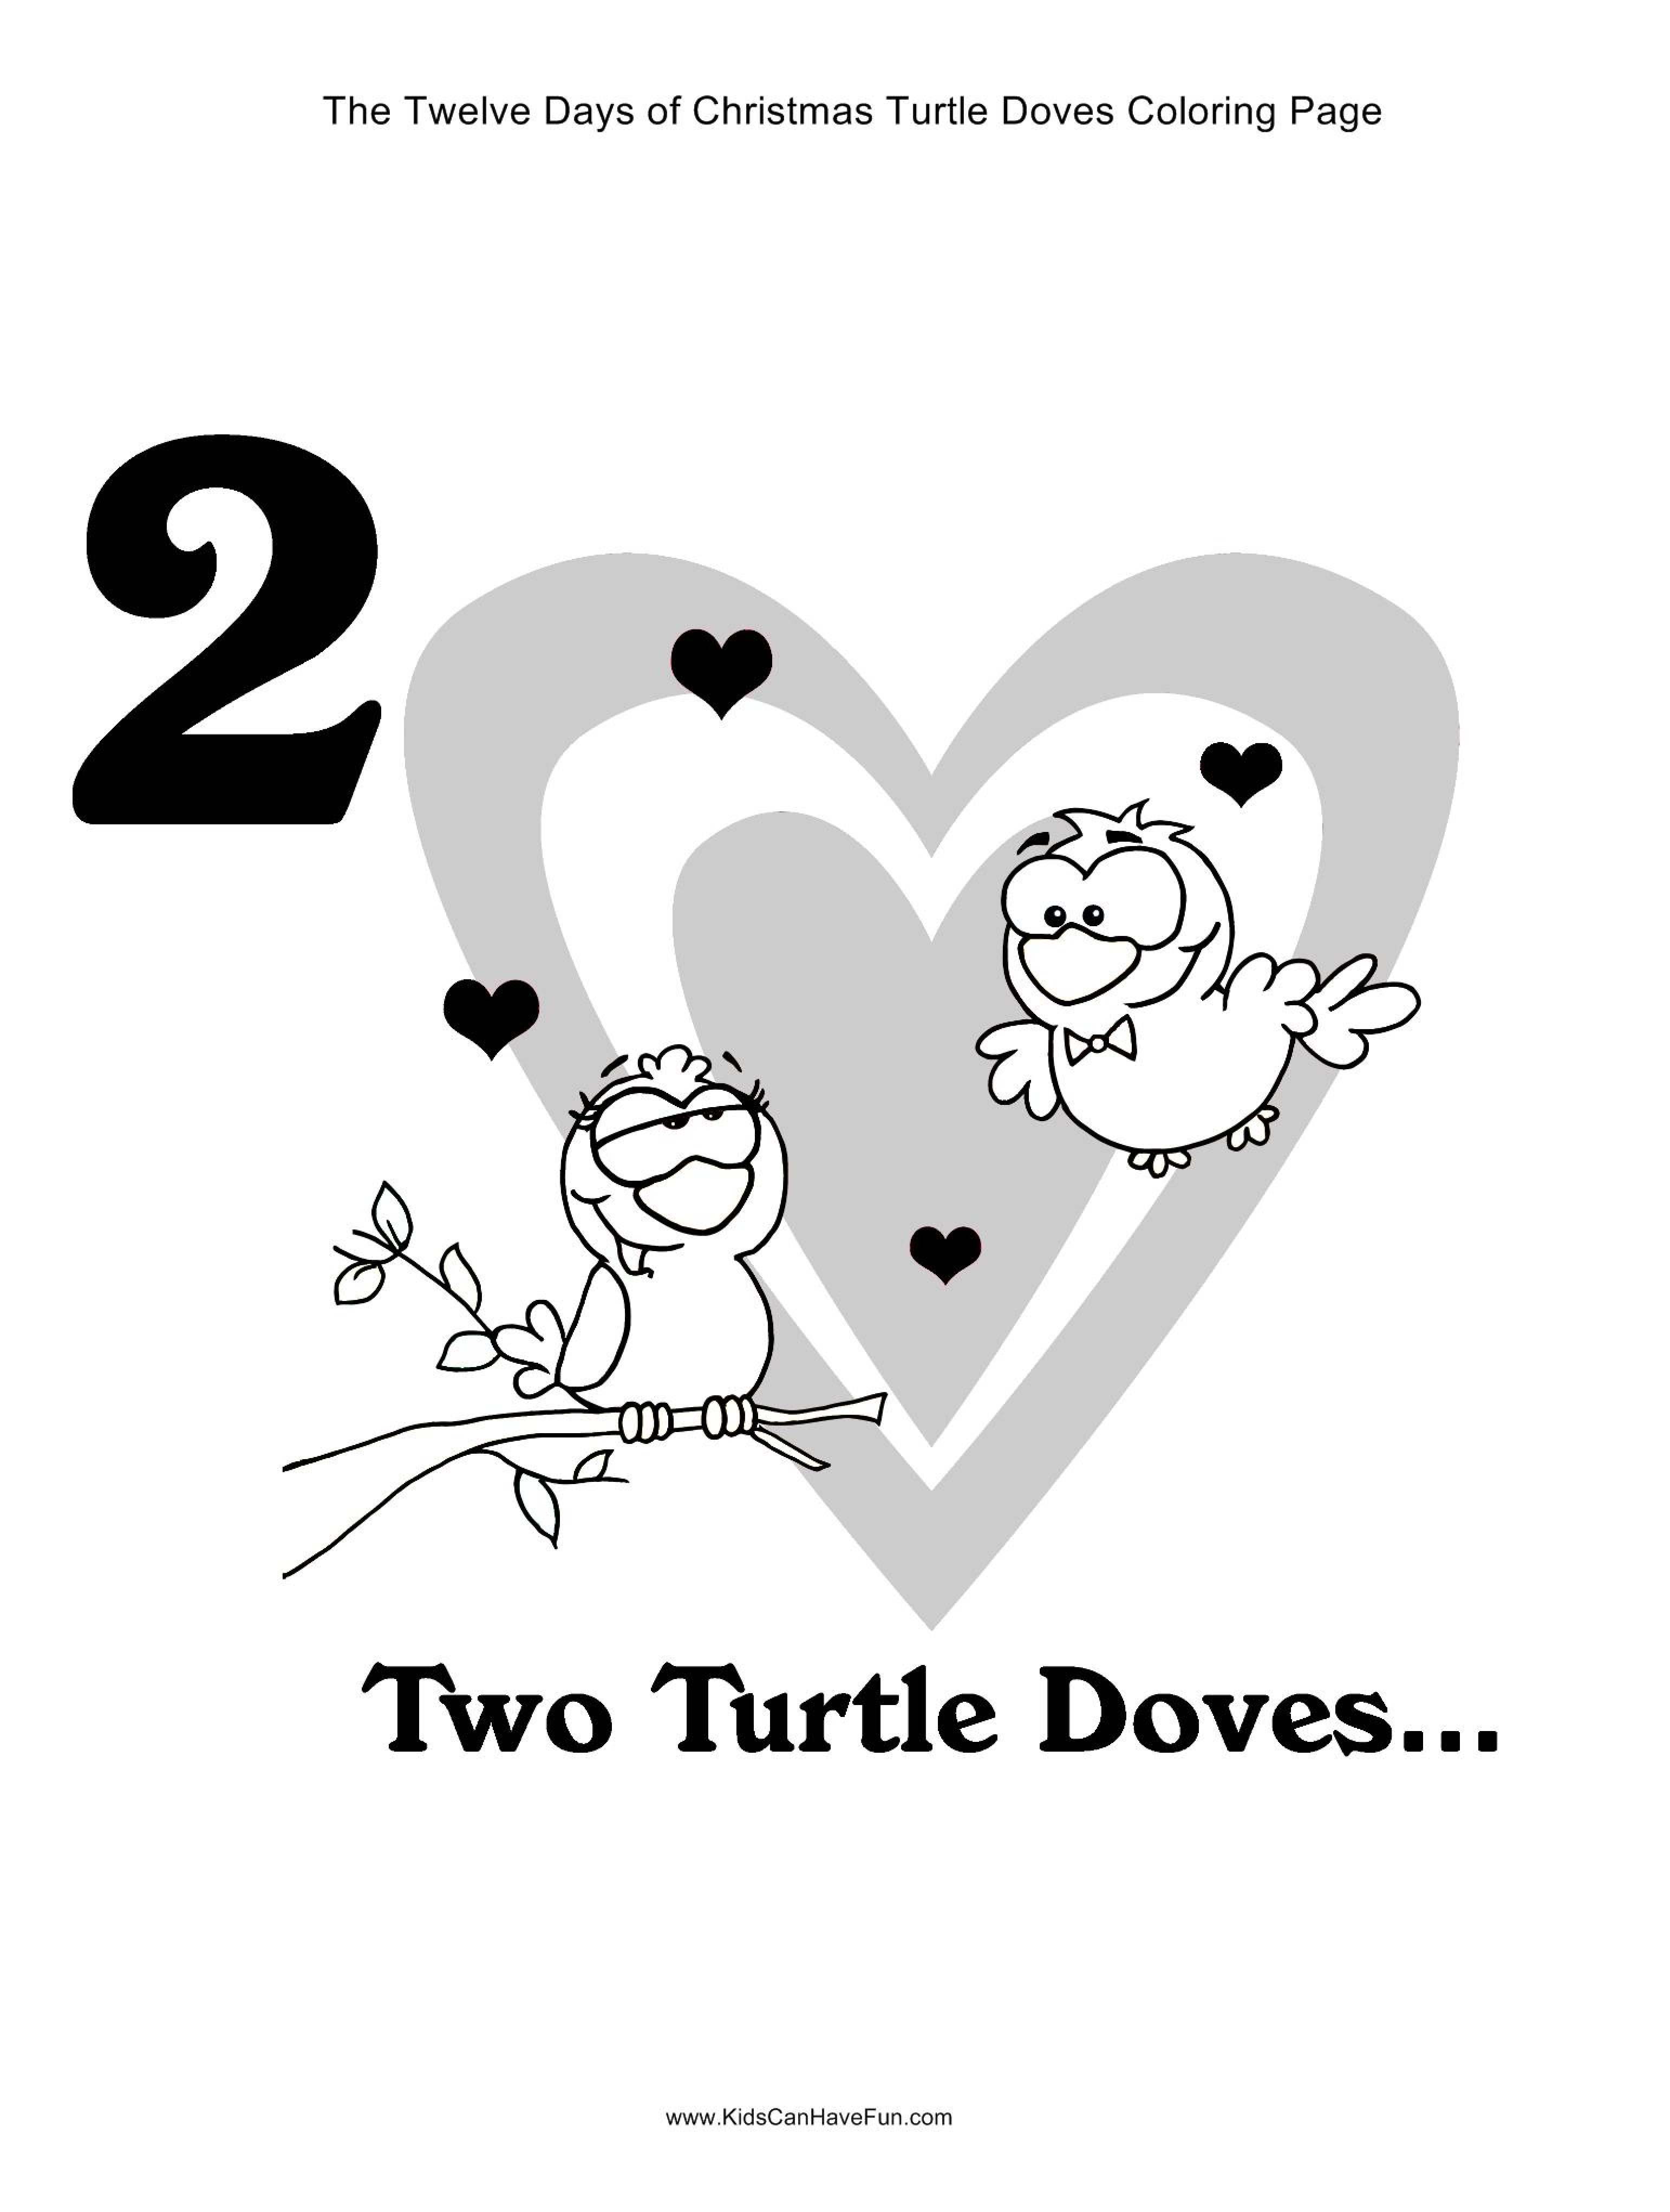 12 Days Of Christmas Two Turtle Doves Coloring Page Kidscanhavefun